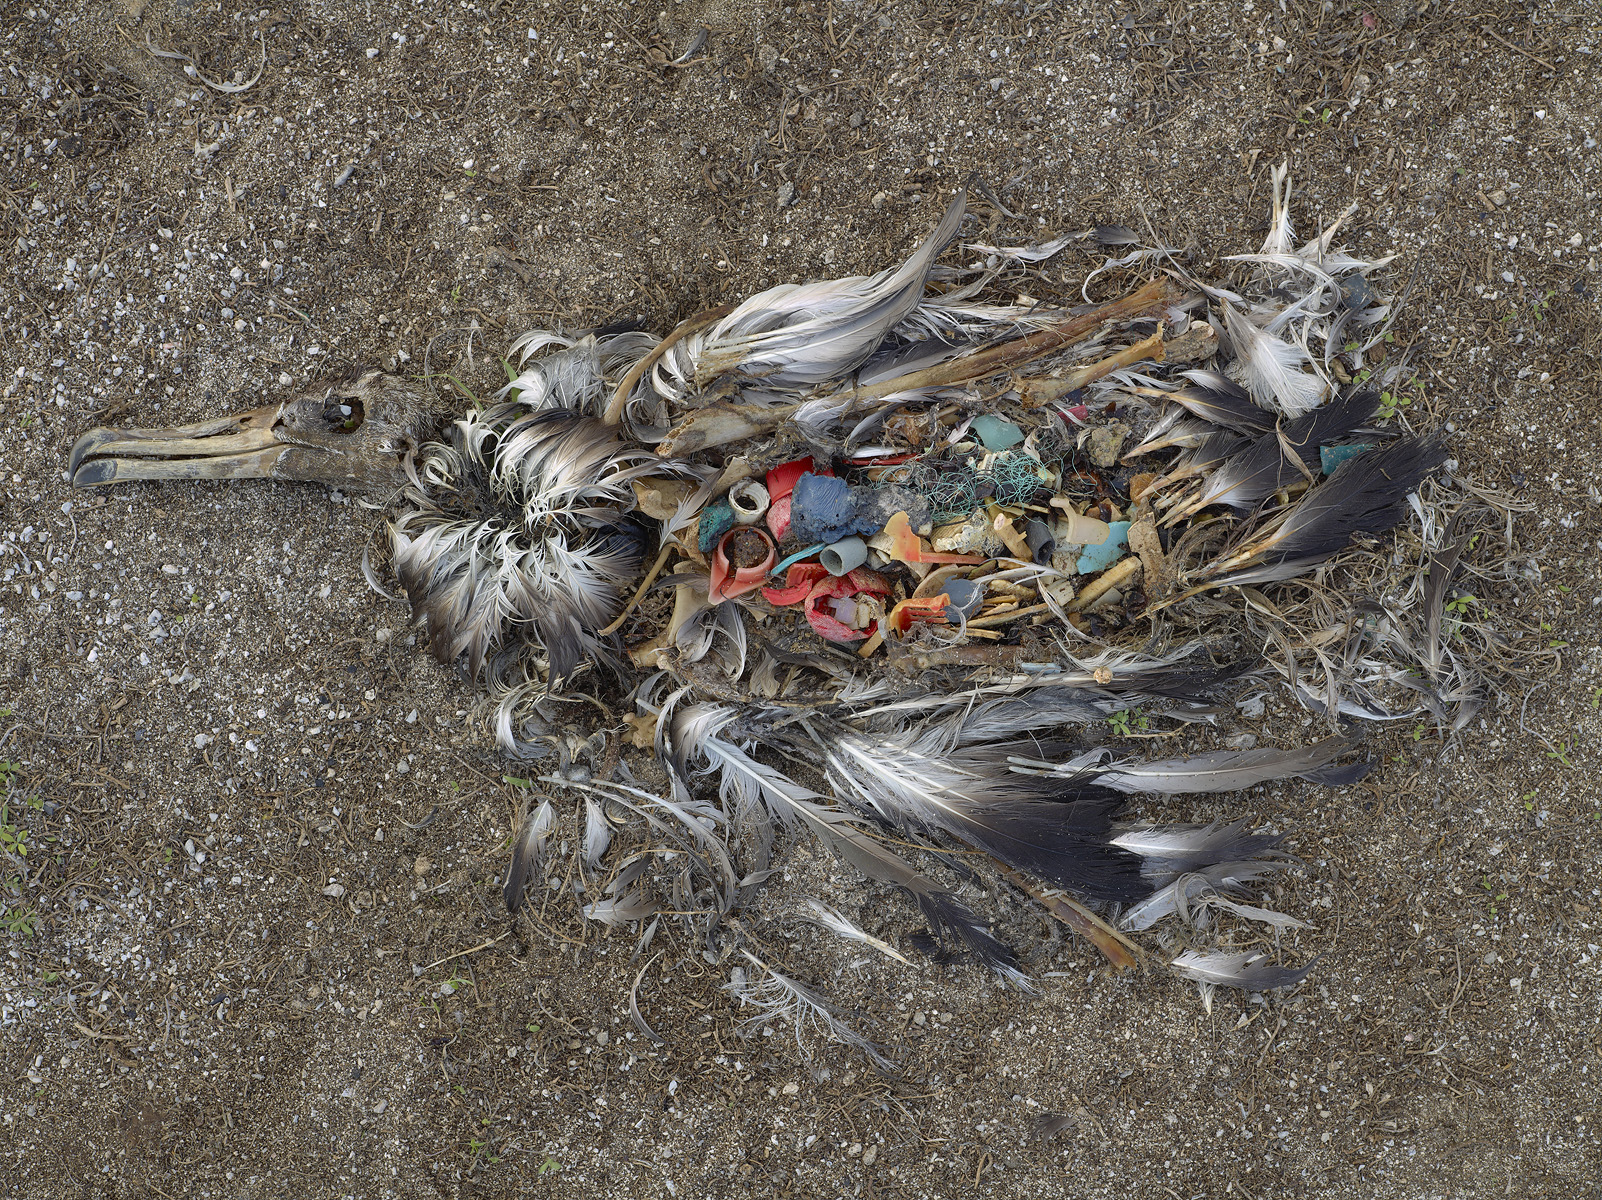 100,000 marine mammals and over 1 million seabirds die from ingesting plastic every year